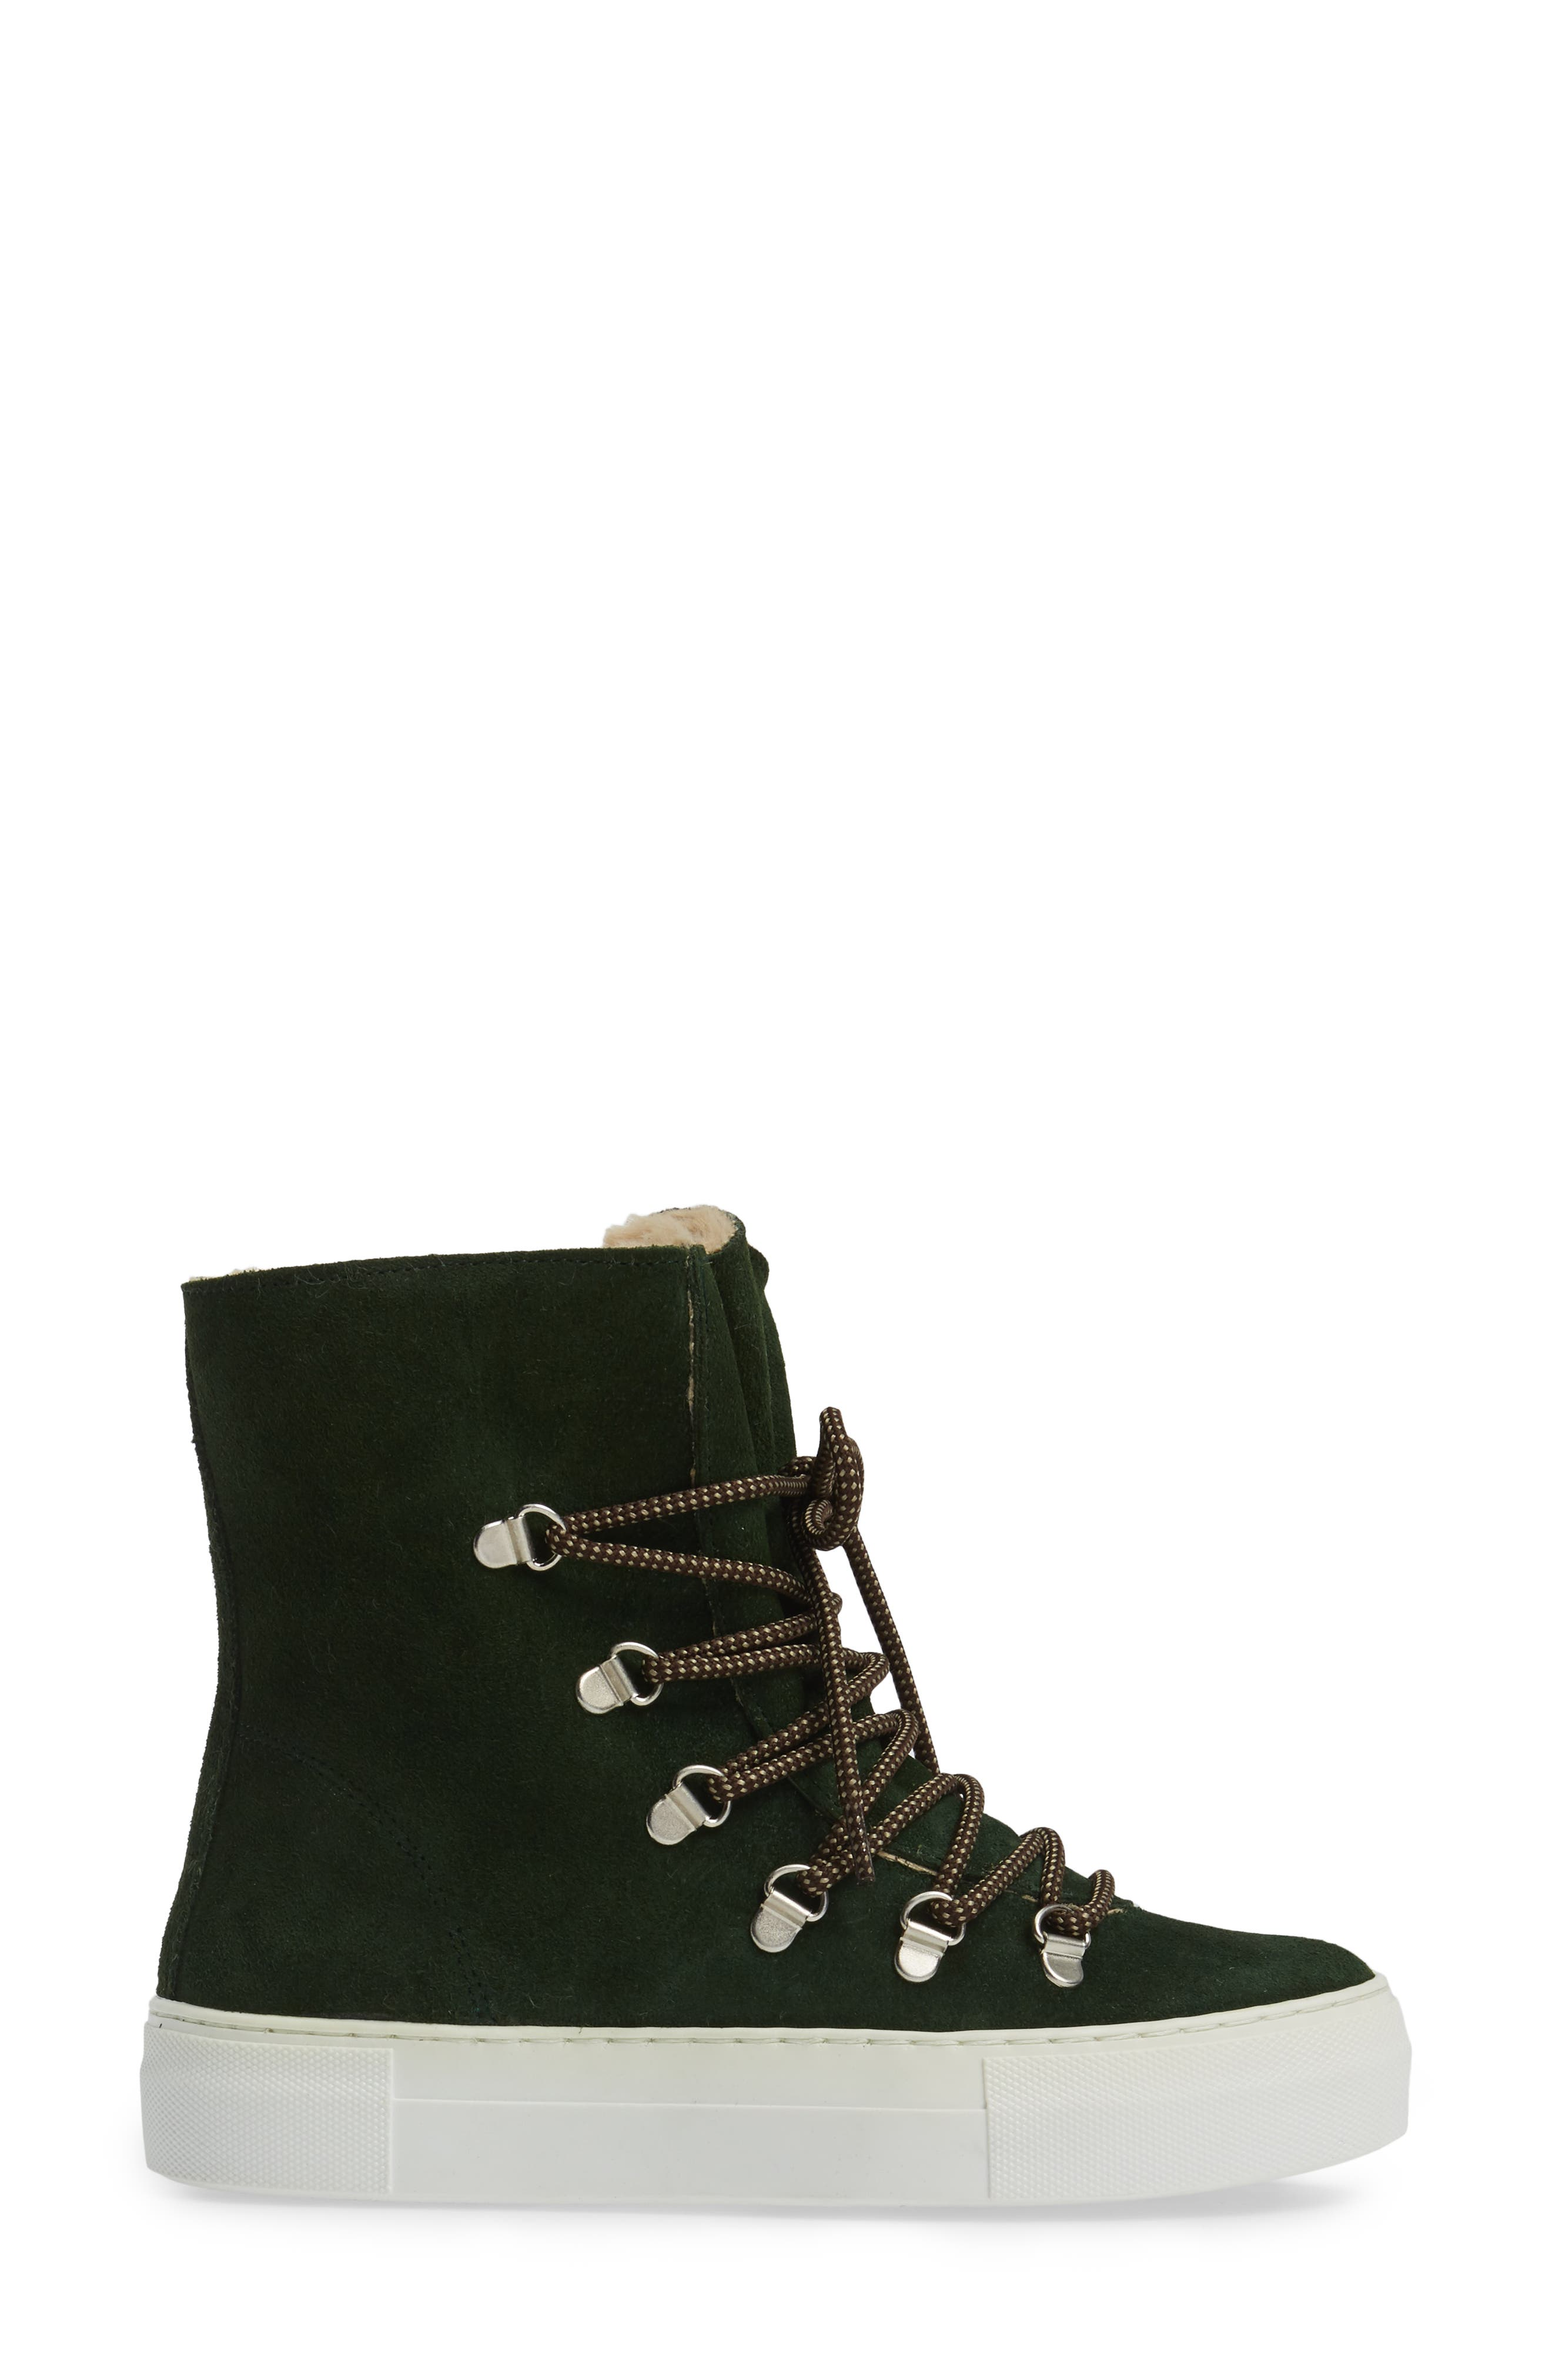 Cimone High Top Sneaker,                             Alternate thumbnail 3, color,                             Green Suede